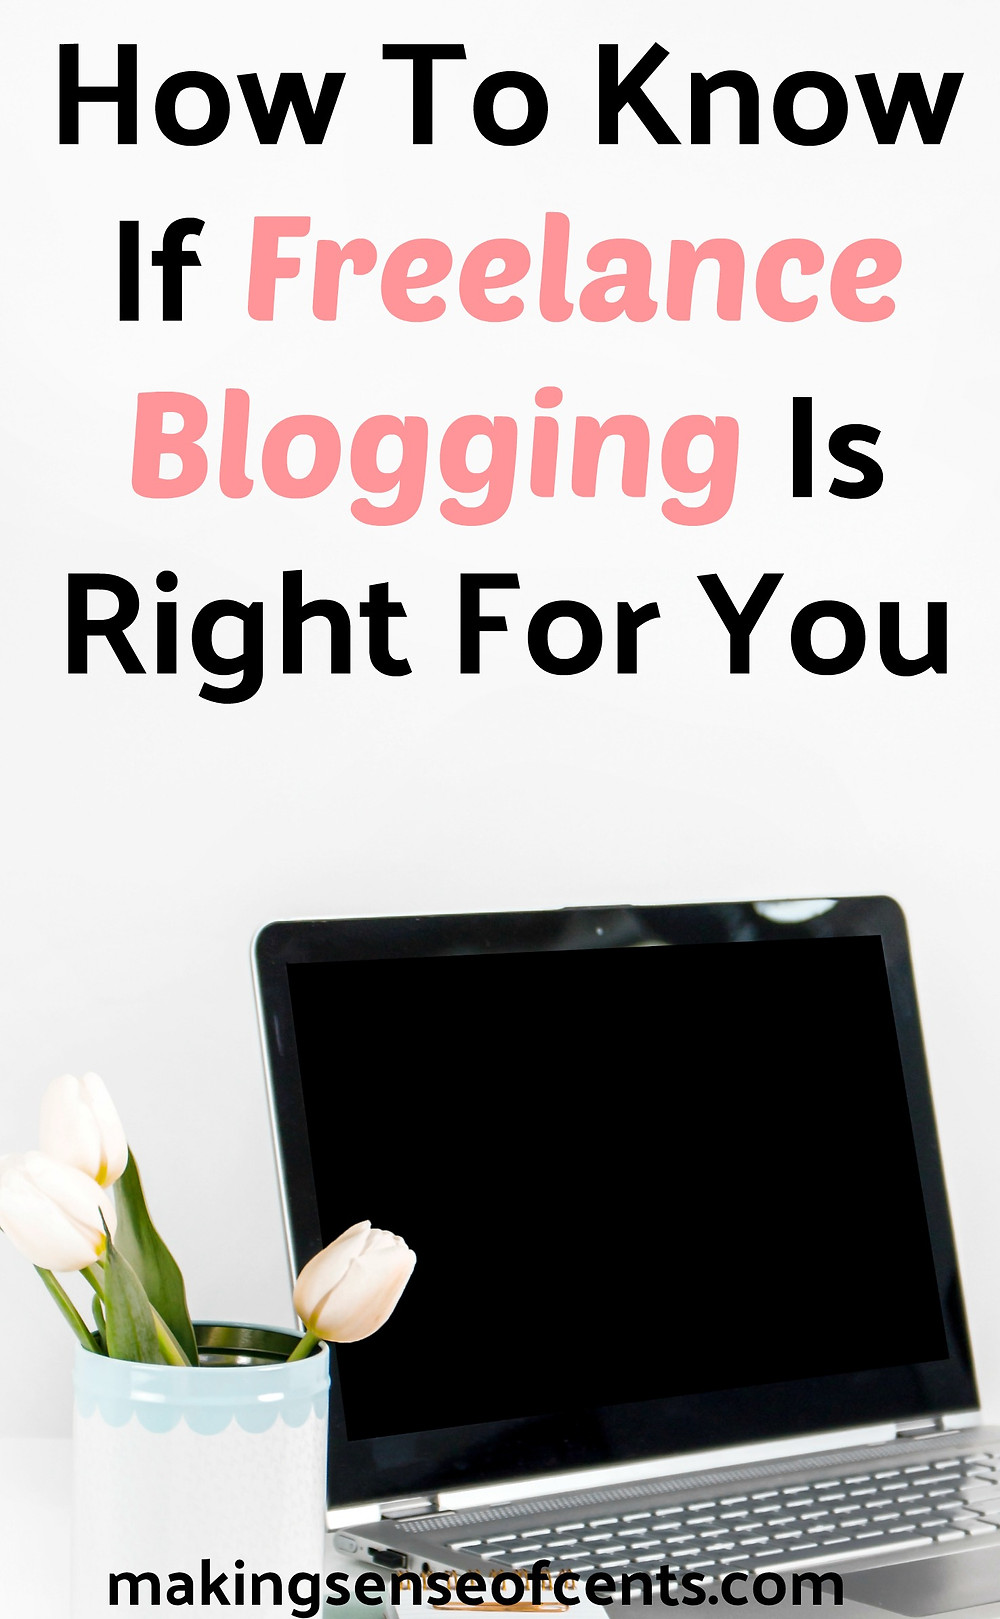 How To Know If Freelance Blogging Is Right For You